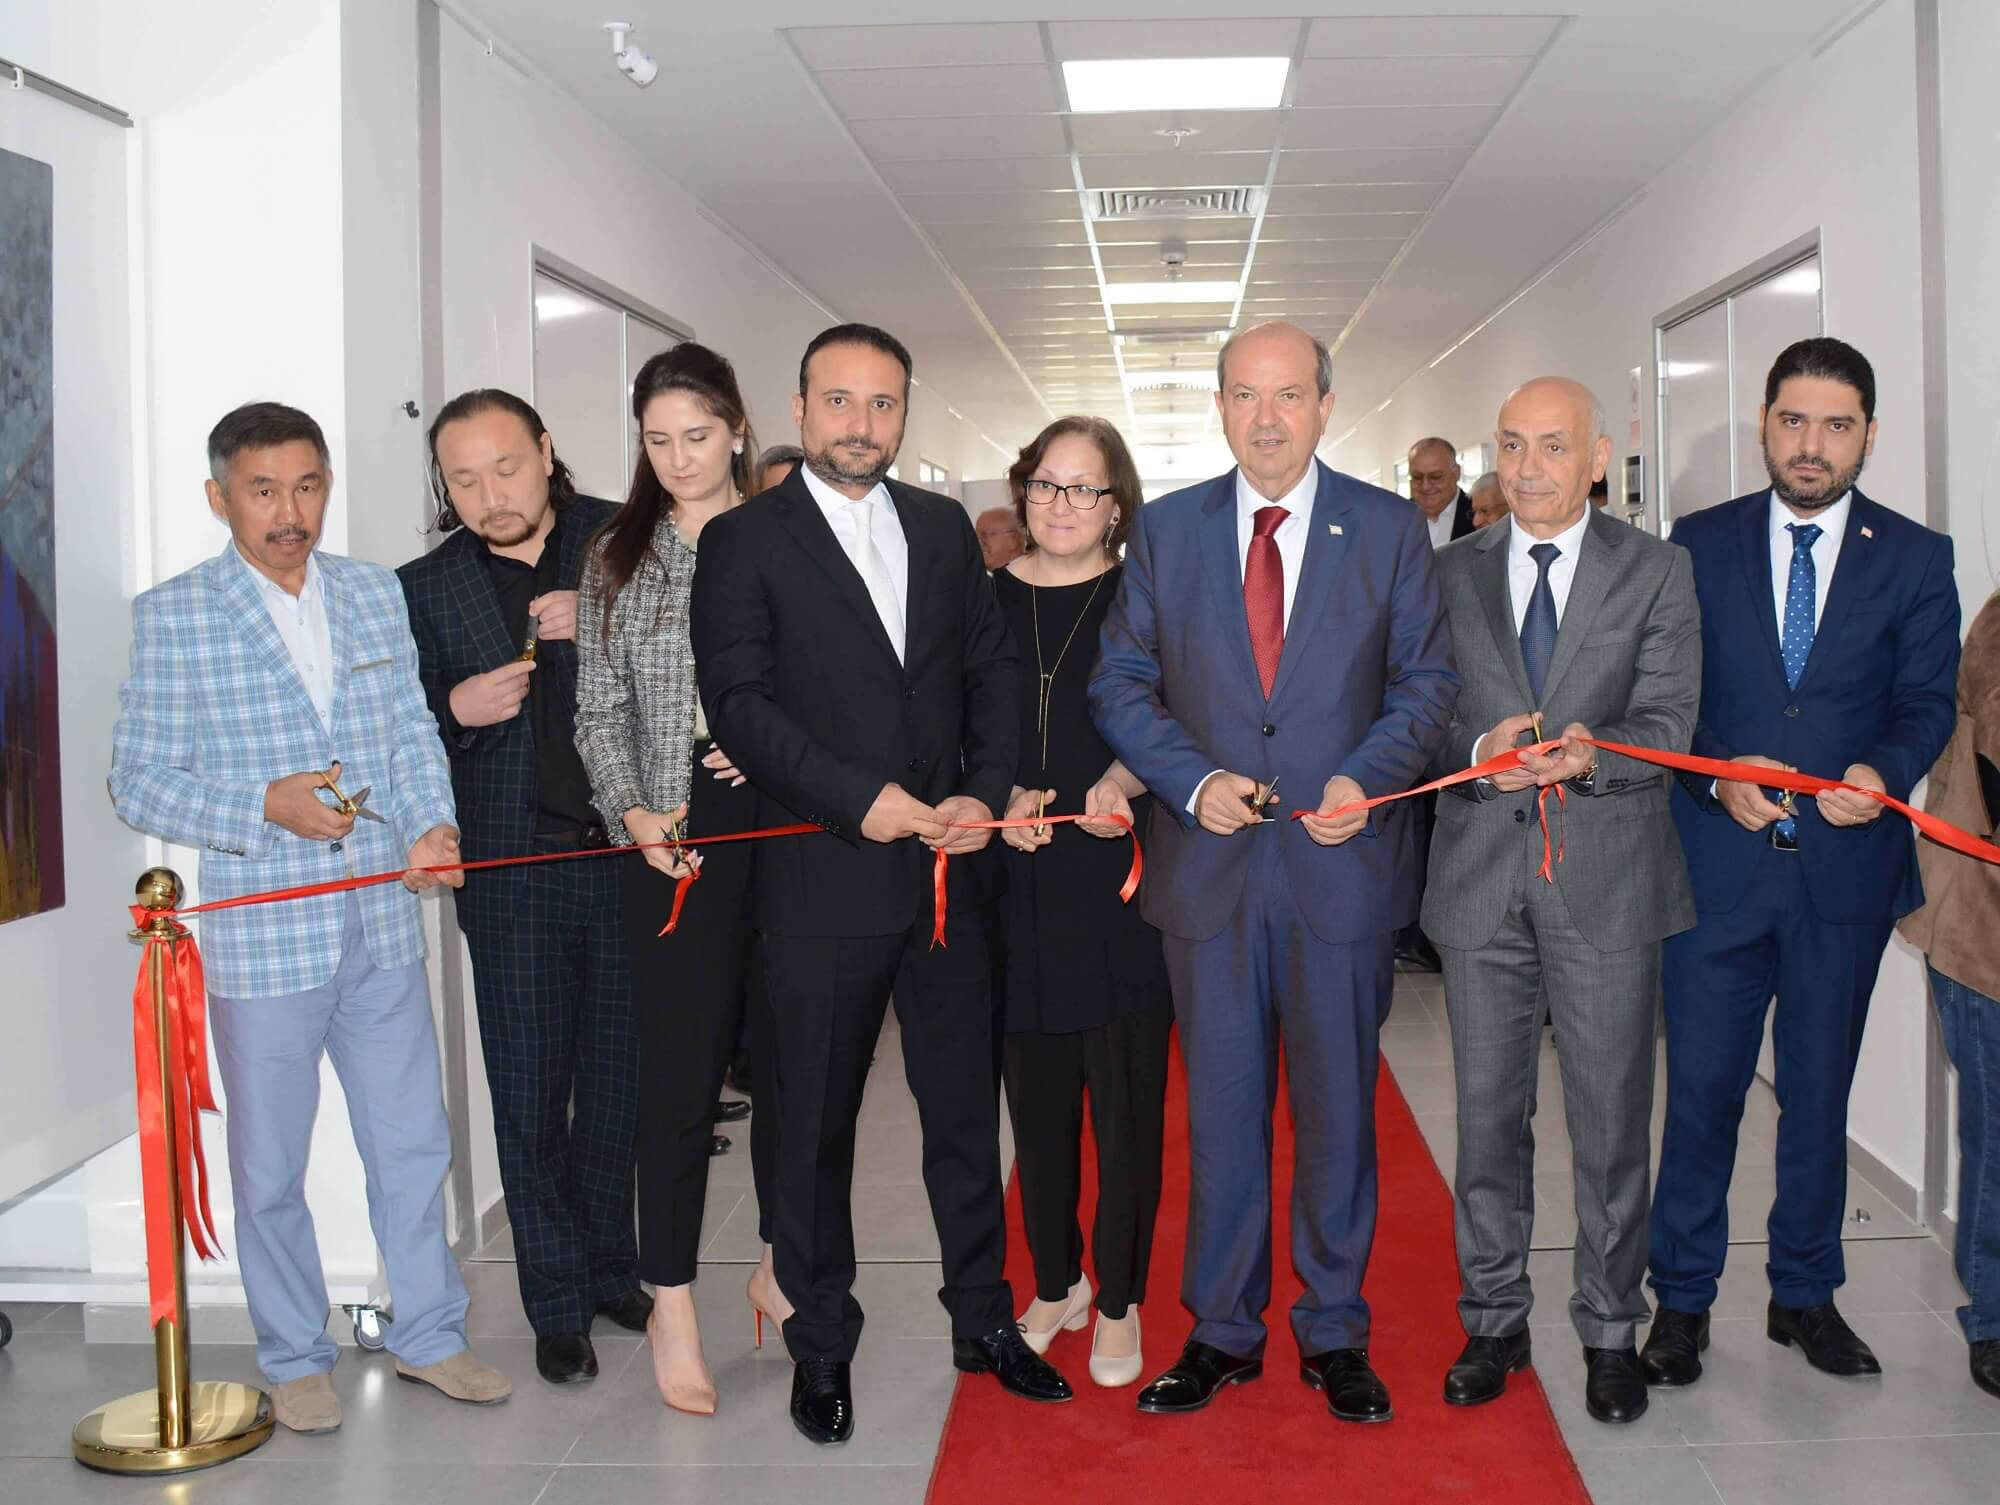 "The Exhibition of the 30 pieces prepared by 5 Kazakh Artists titled as ""Art Exhibition of Kazakh Artists"" has been opened by General Director of National Unity Party Ersin Tatar…"